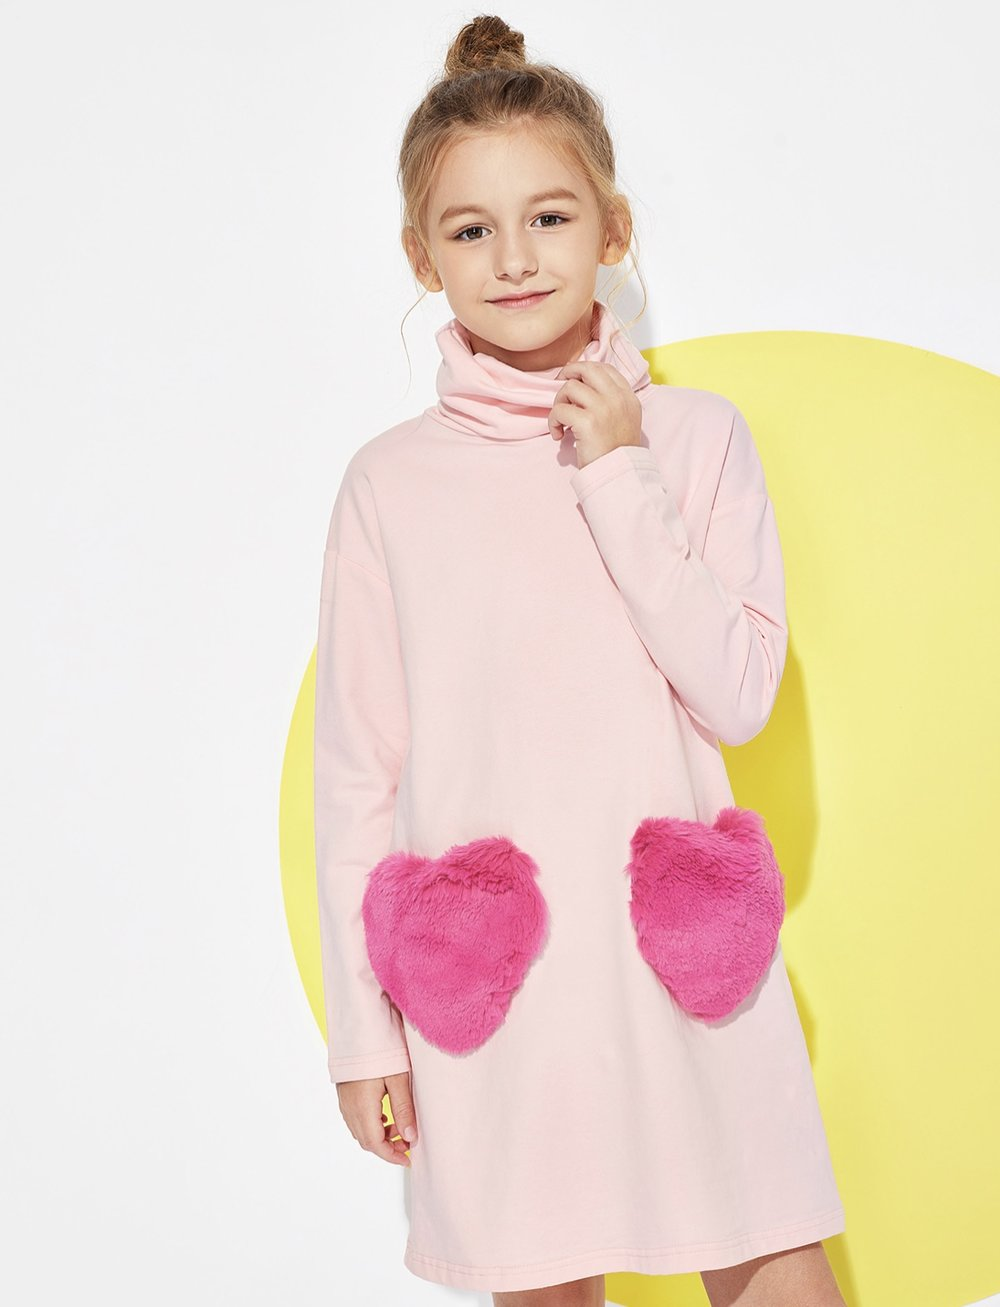 Shein - Girls High Neck Fleece Love Dress